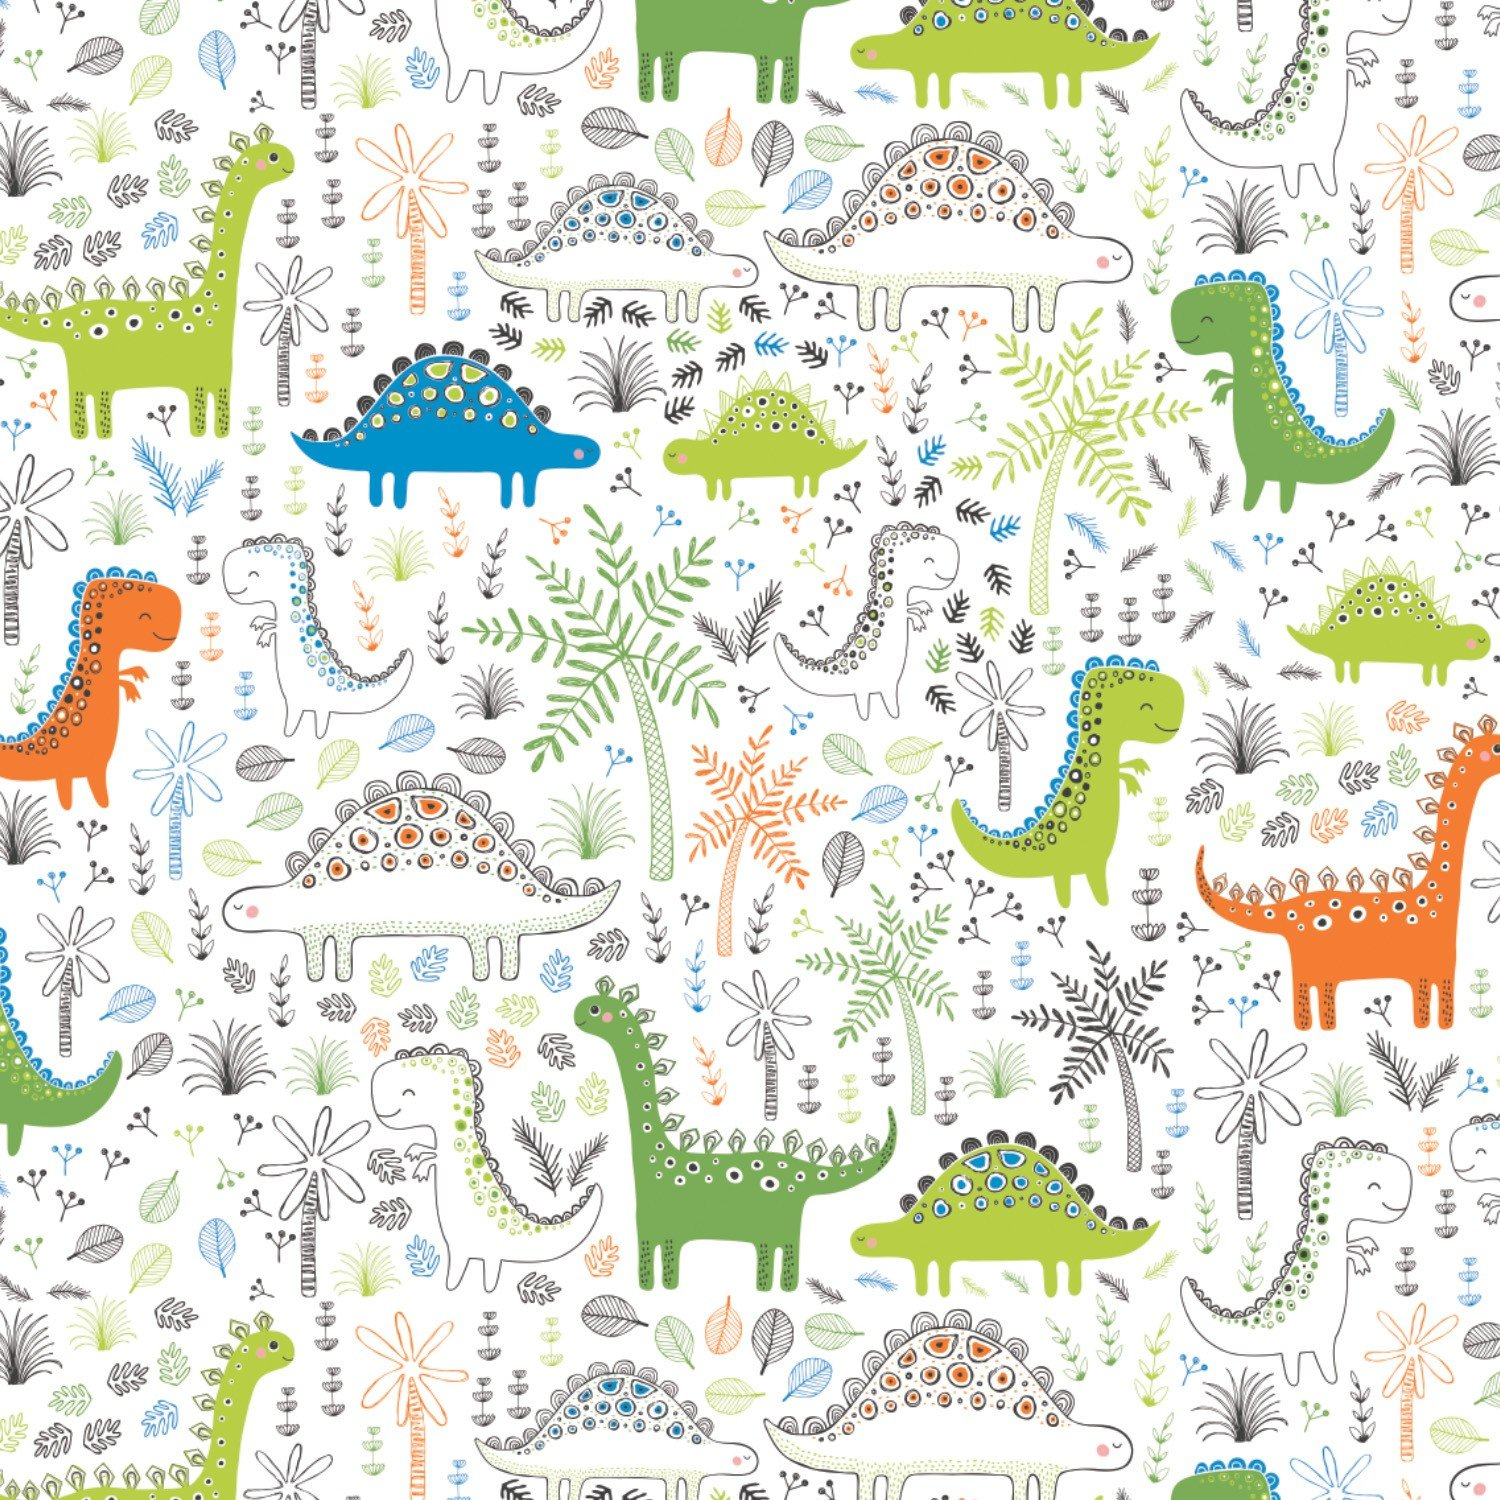 Roarsome Dinosaurs in Forest Fabric